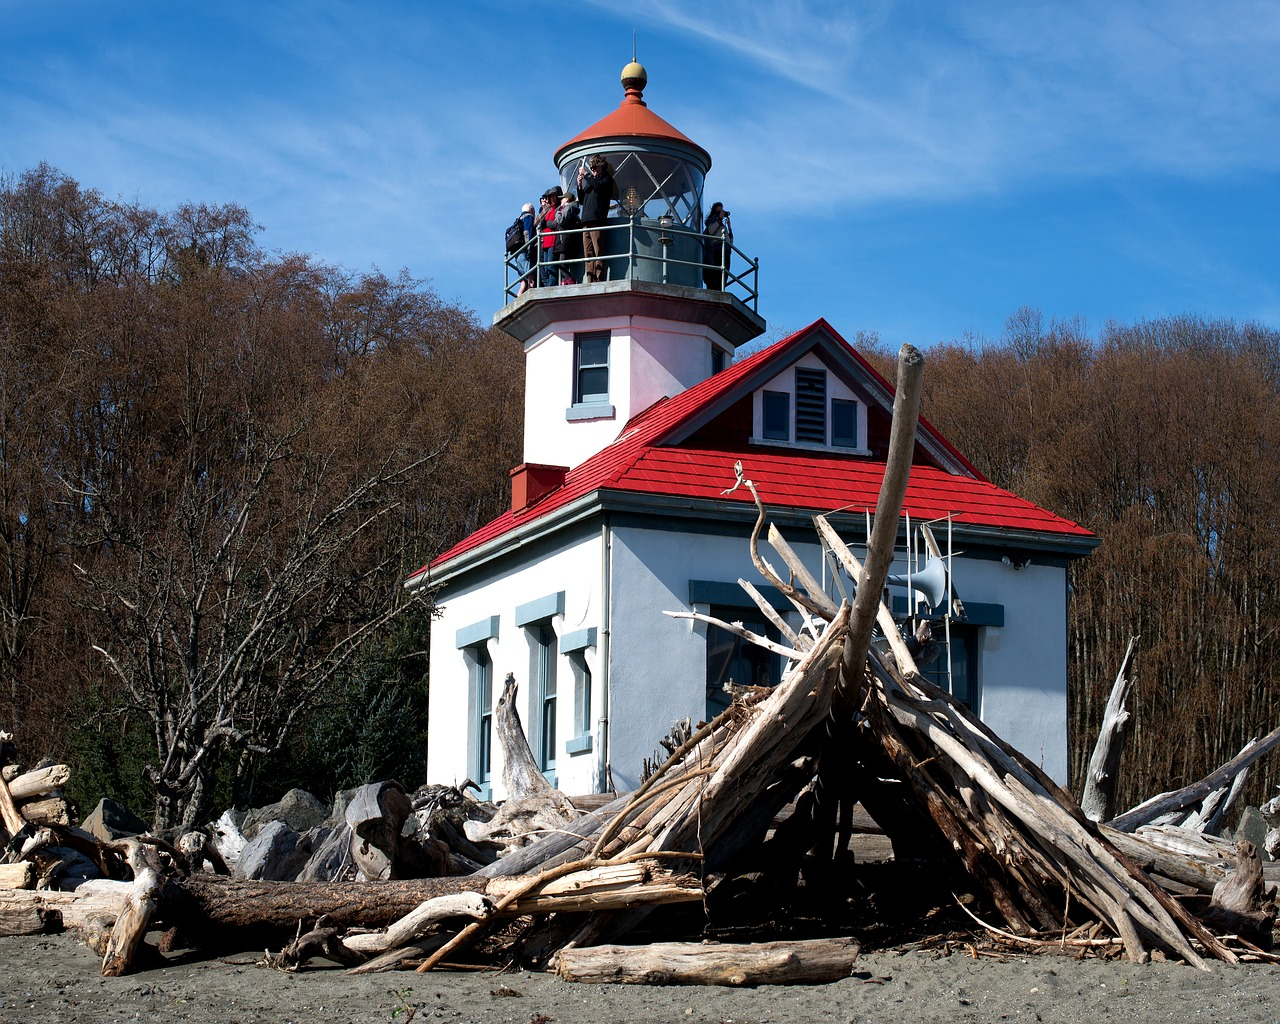 lighthouse, point robinson, maury island, vashon island, house, building, architecture, sky, outdoors, historic, washington, puget sound, landscape, structure, seascape, beach, unique, shore, driftwood, coastal, nautical, travel, island,free pictures, free photos, free images, royalty free, free illustrations, public domain